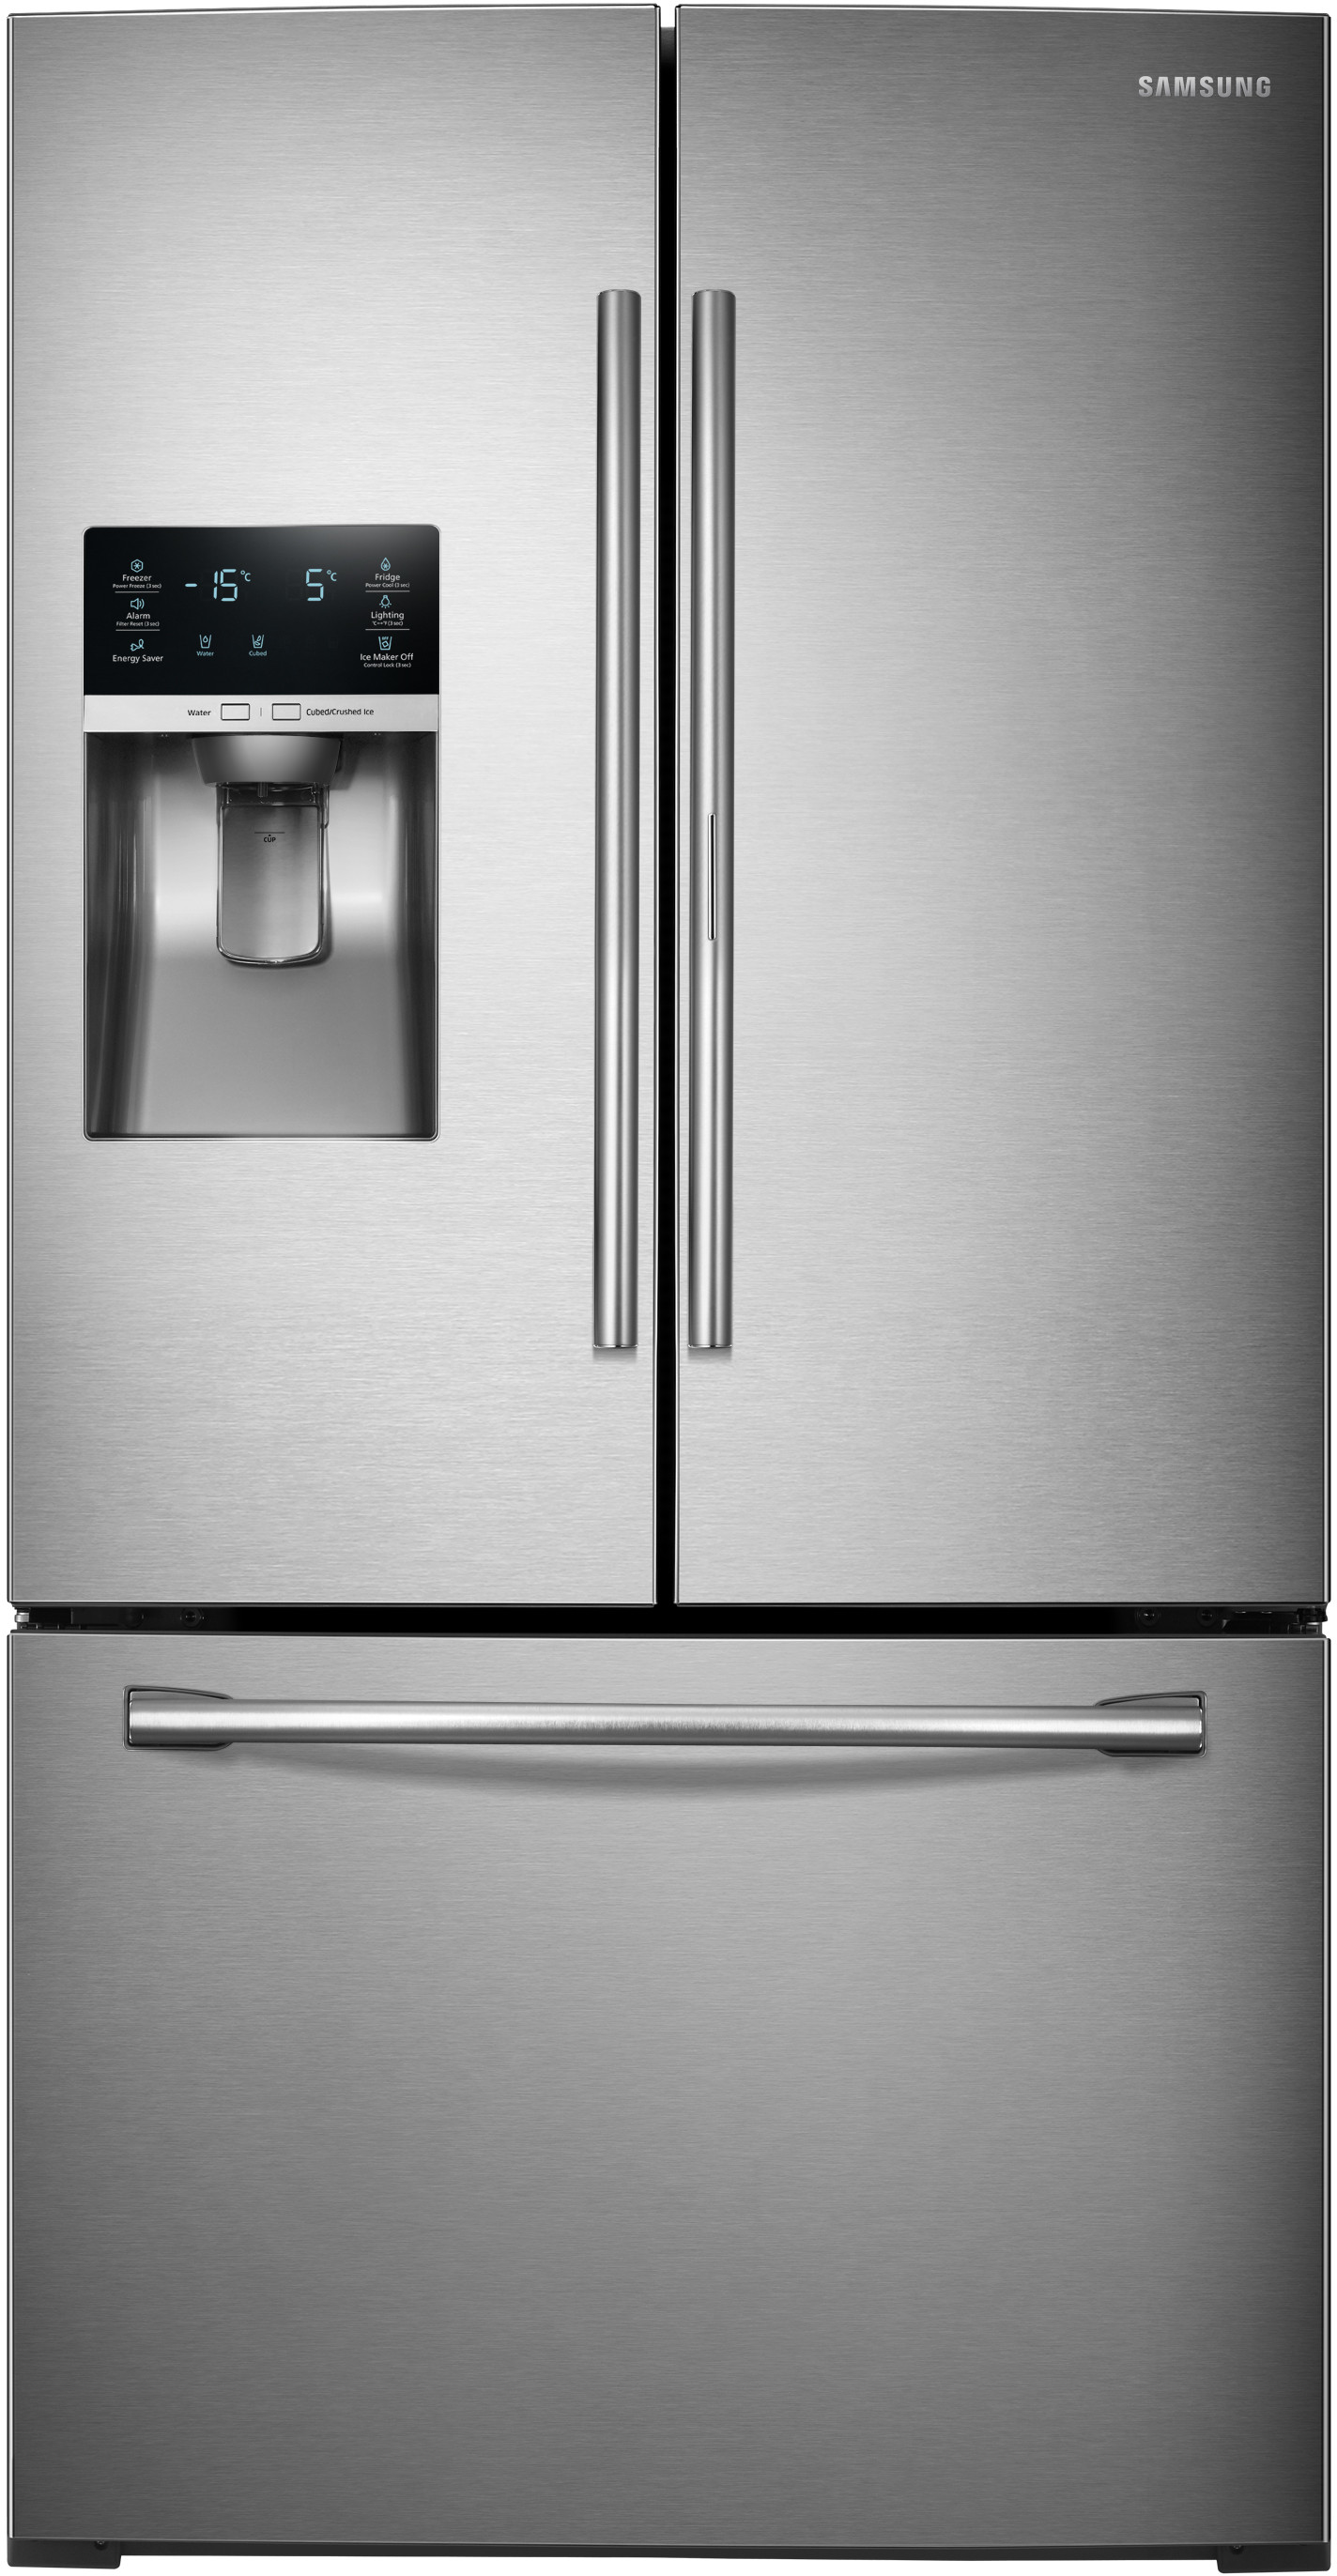 Samsung Rf28hdedbsr 36 Inch French Door Refrigerator With